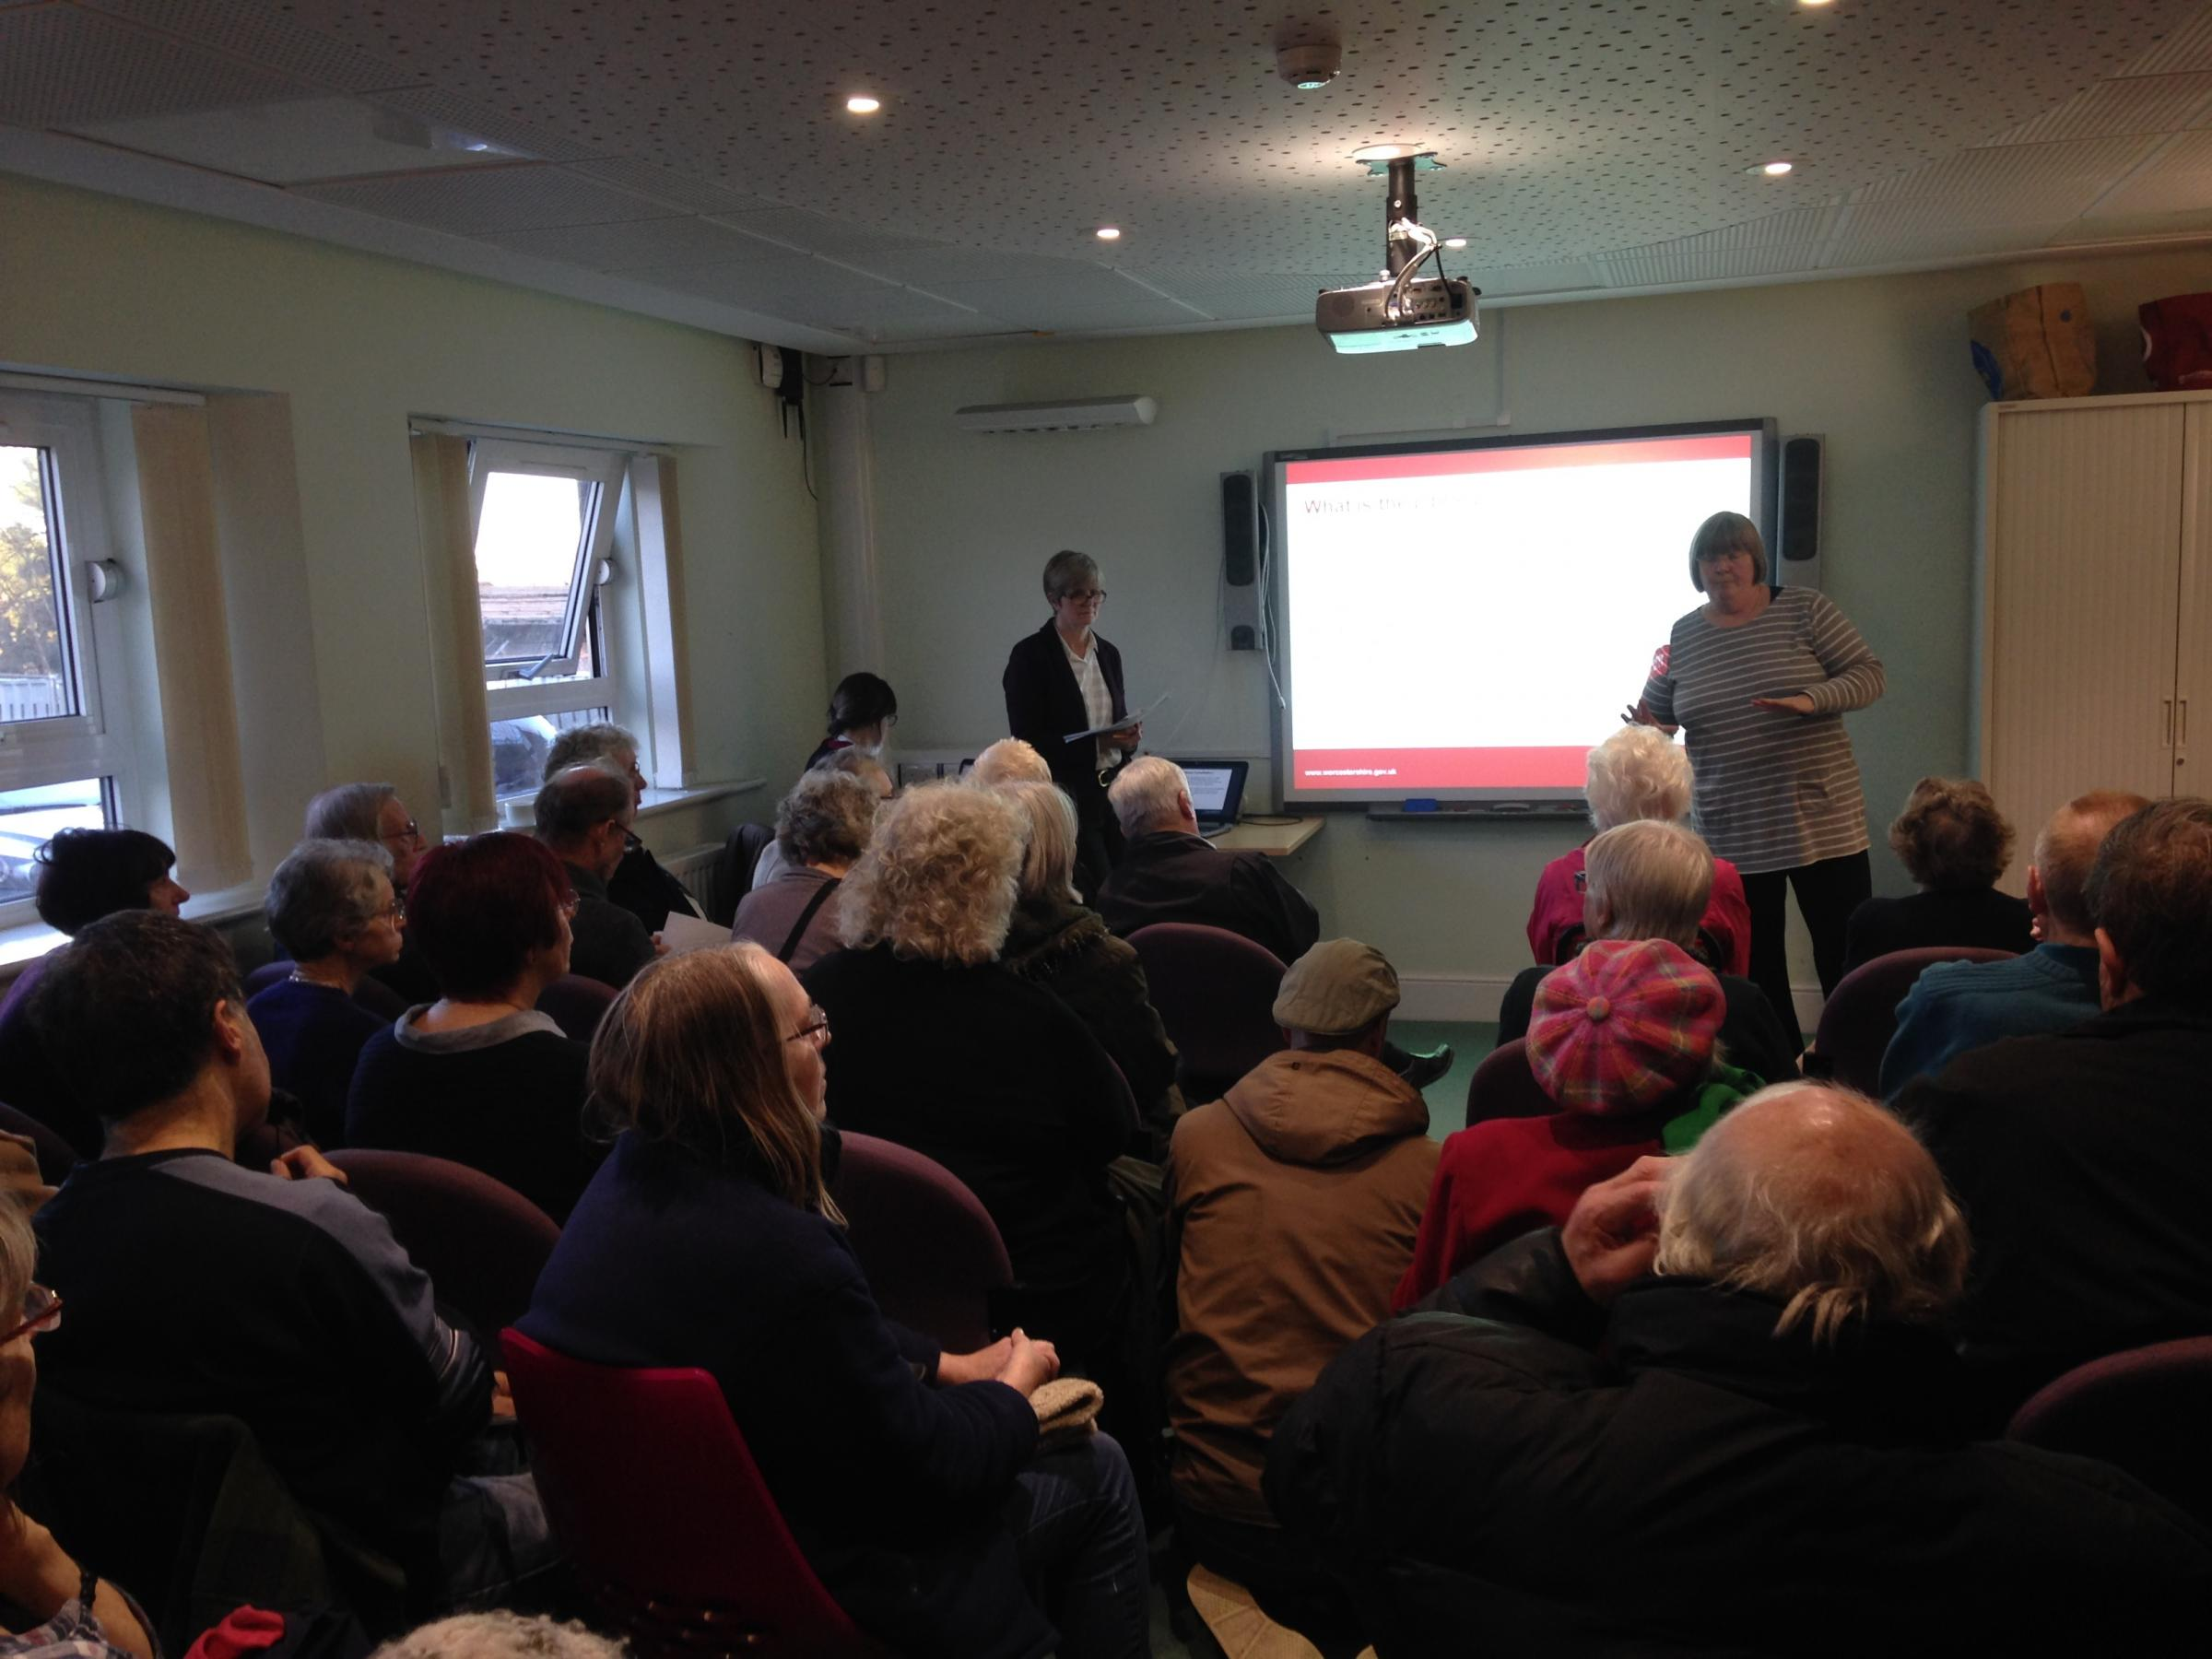 OPPOSITION: More than 80 residents crammed into St John's library in Worcester to voice concern over council changes.